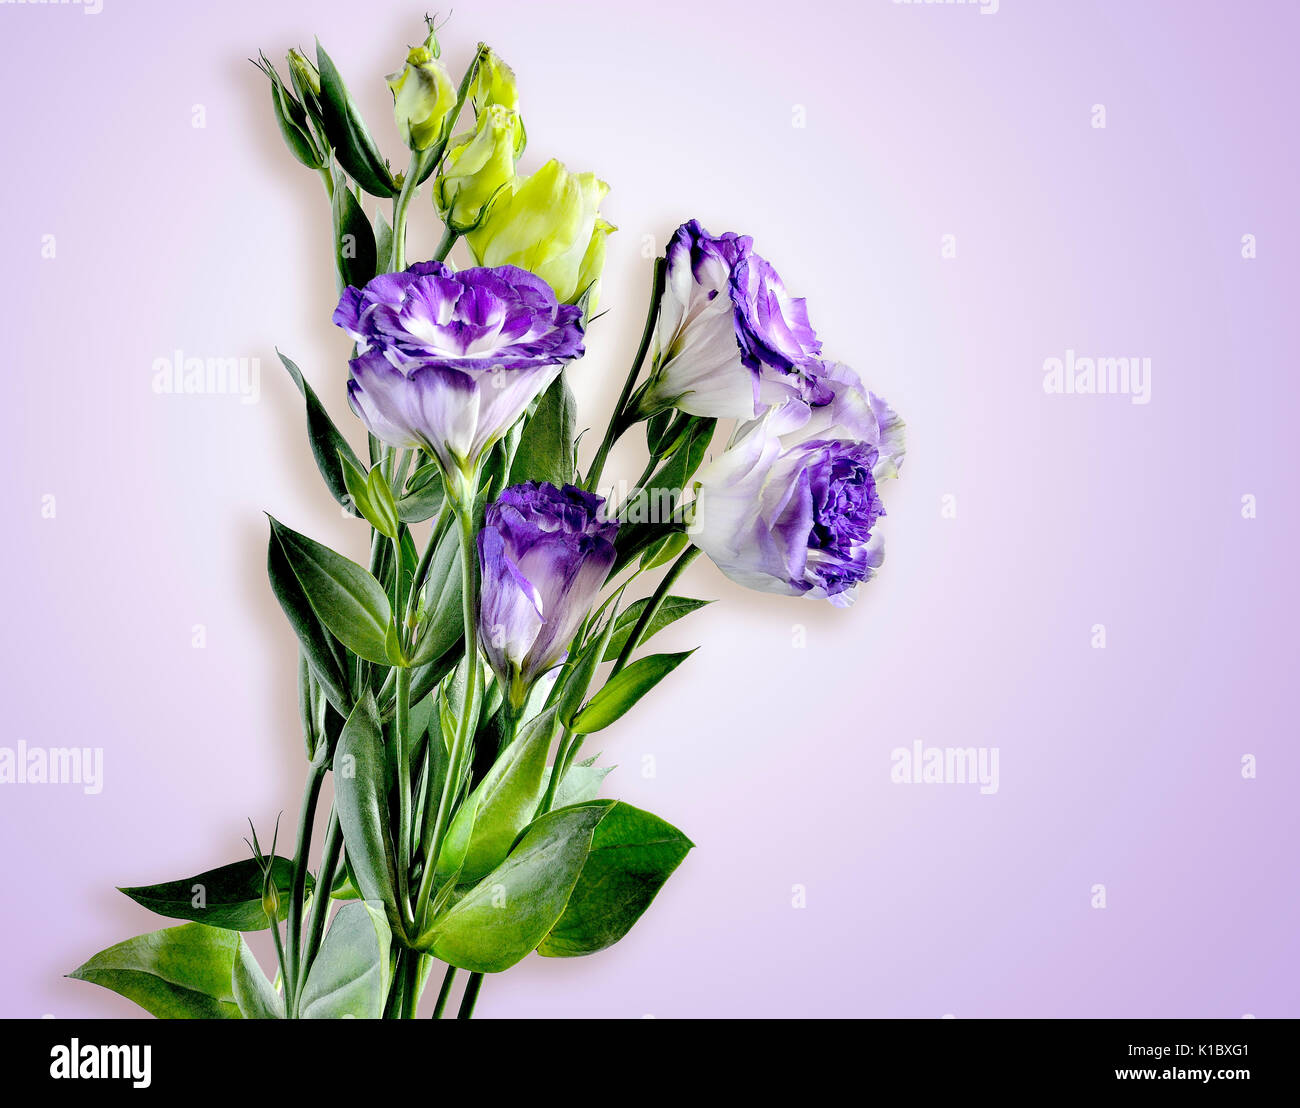 Bouquet of purple with white eustoma lisianthus flowers on a bouquet of purple with white eustoma lisianthus flowers on a tender lilac background thecheapjerseys Choice Image